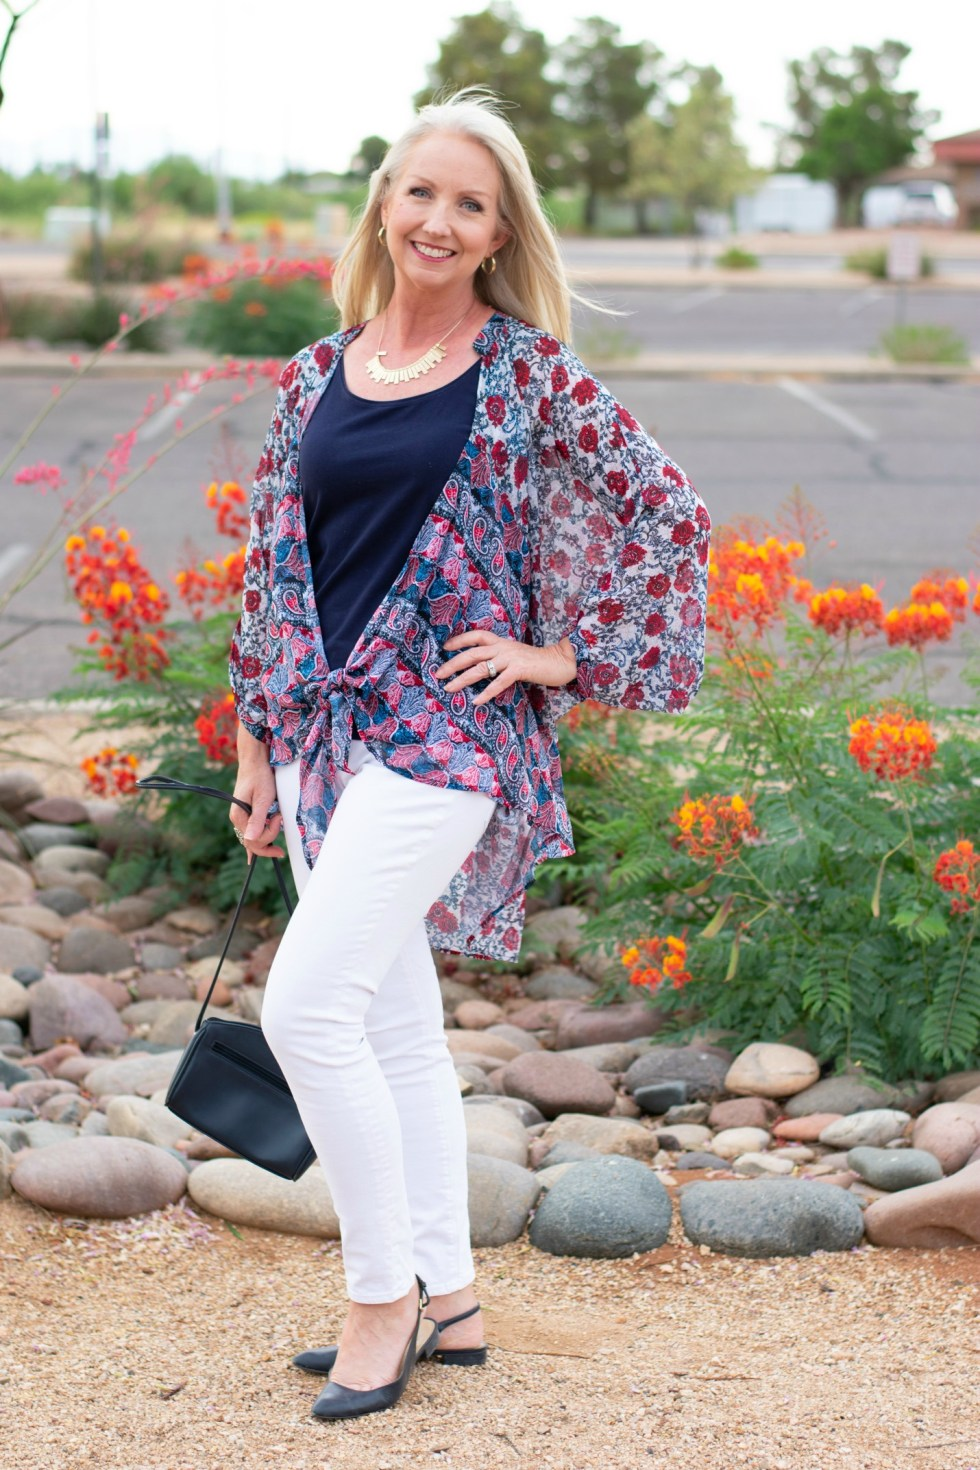 4th of July outfits for women